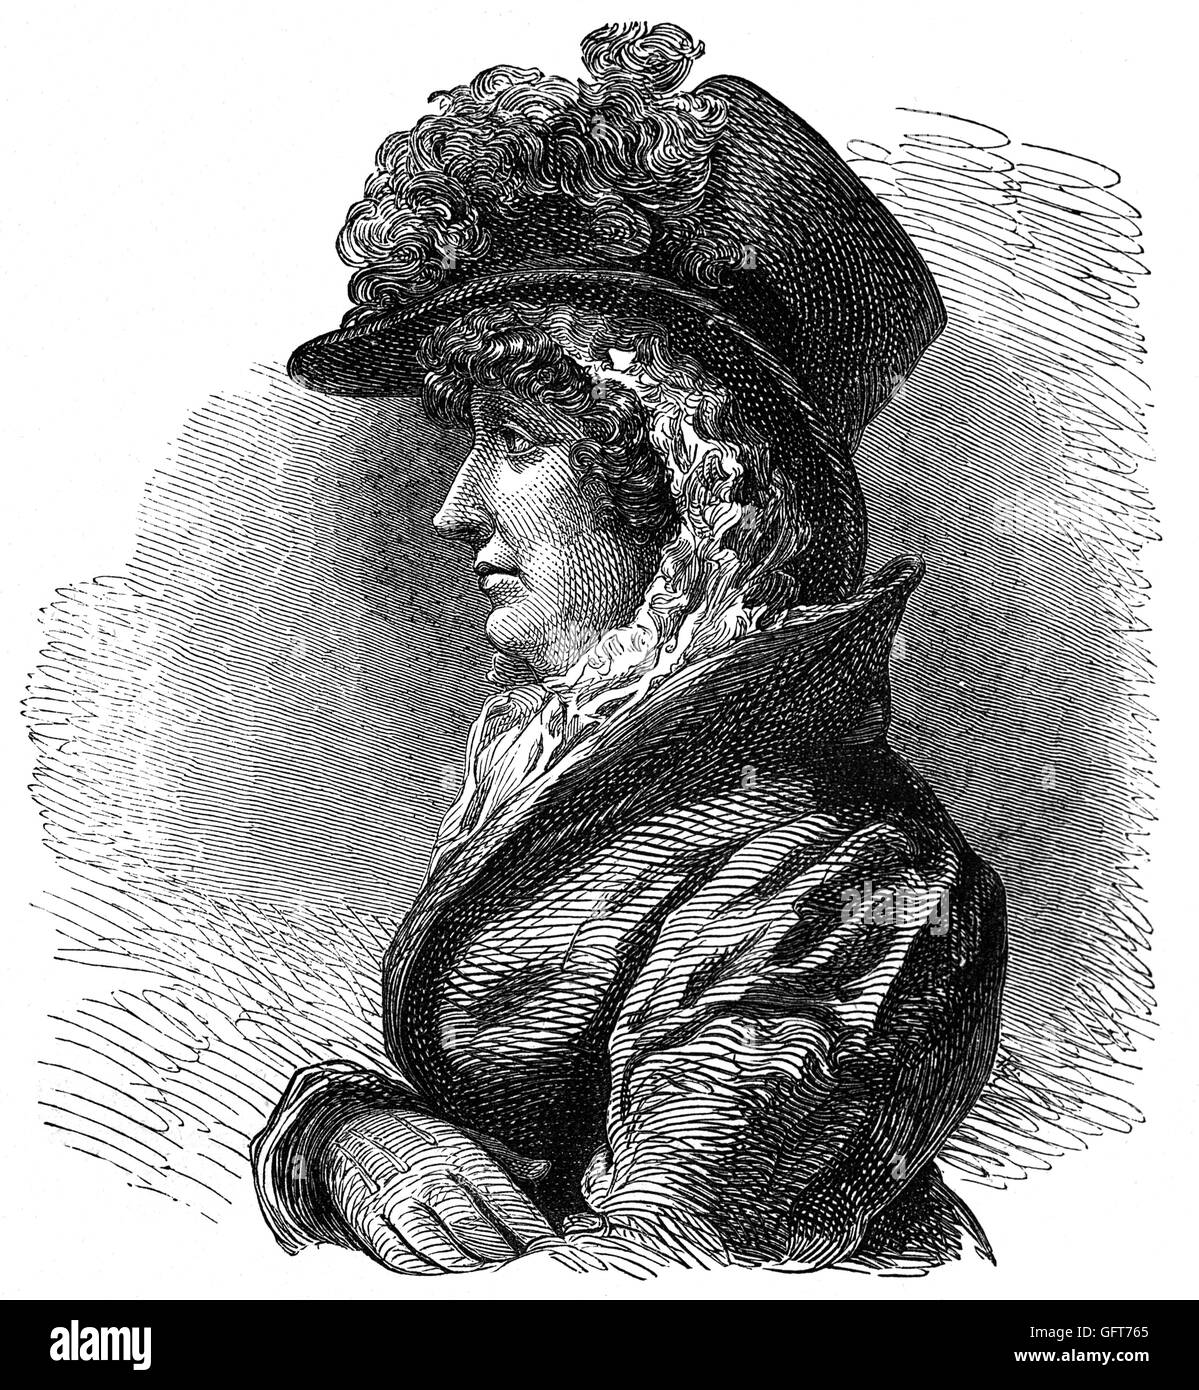 Queen Caroline or Caroline of Brunswick (1768 – 1821), was the wife of King George IV from 29 January 1820 until - Stock Image